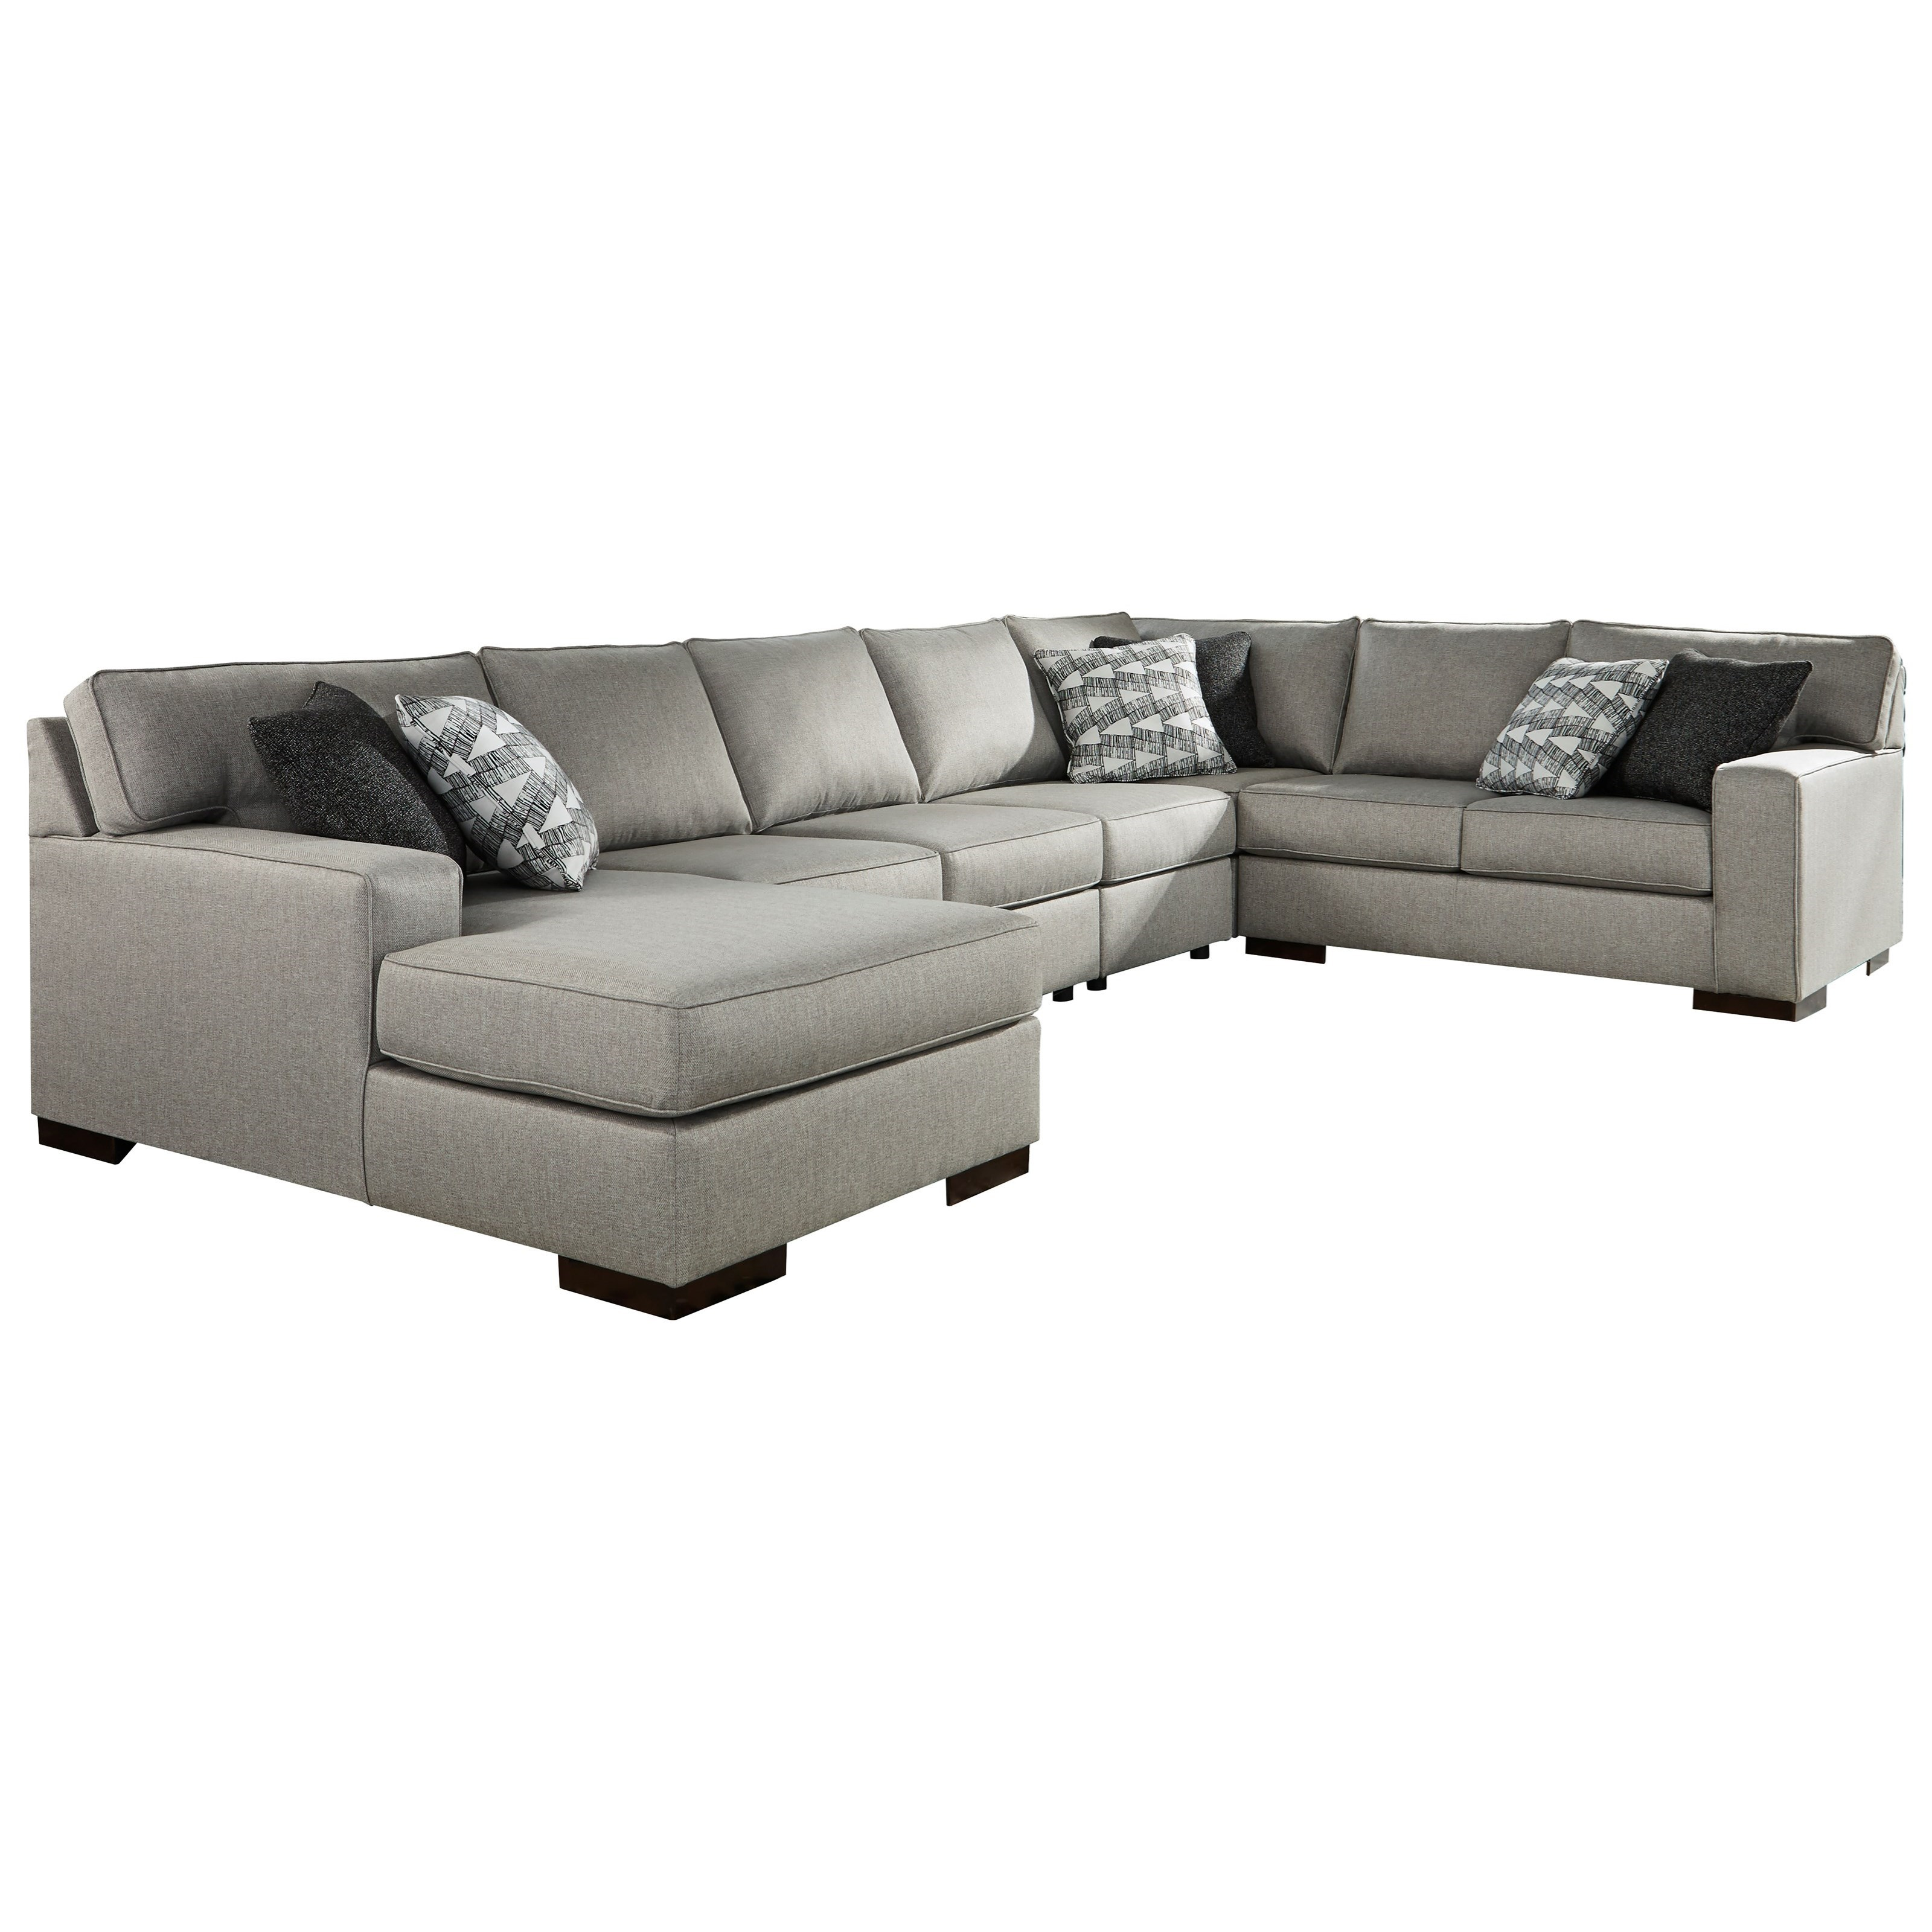 Marsing Nuvella 5-Piece Sectional with Chaise by Benchcraft at Northeast Factory Direct